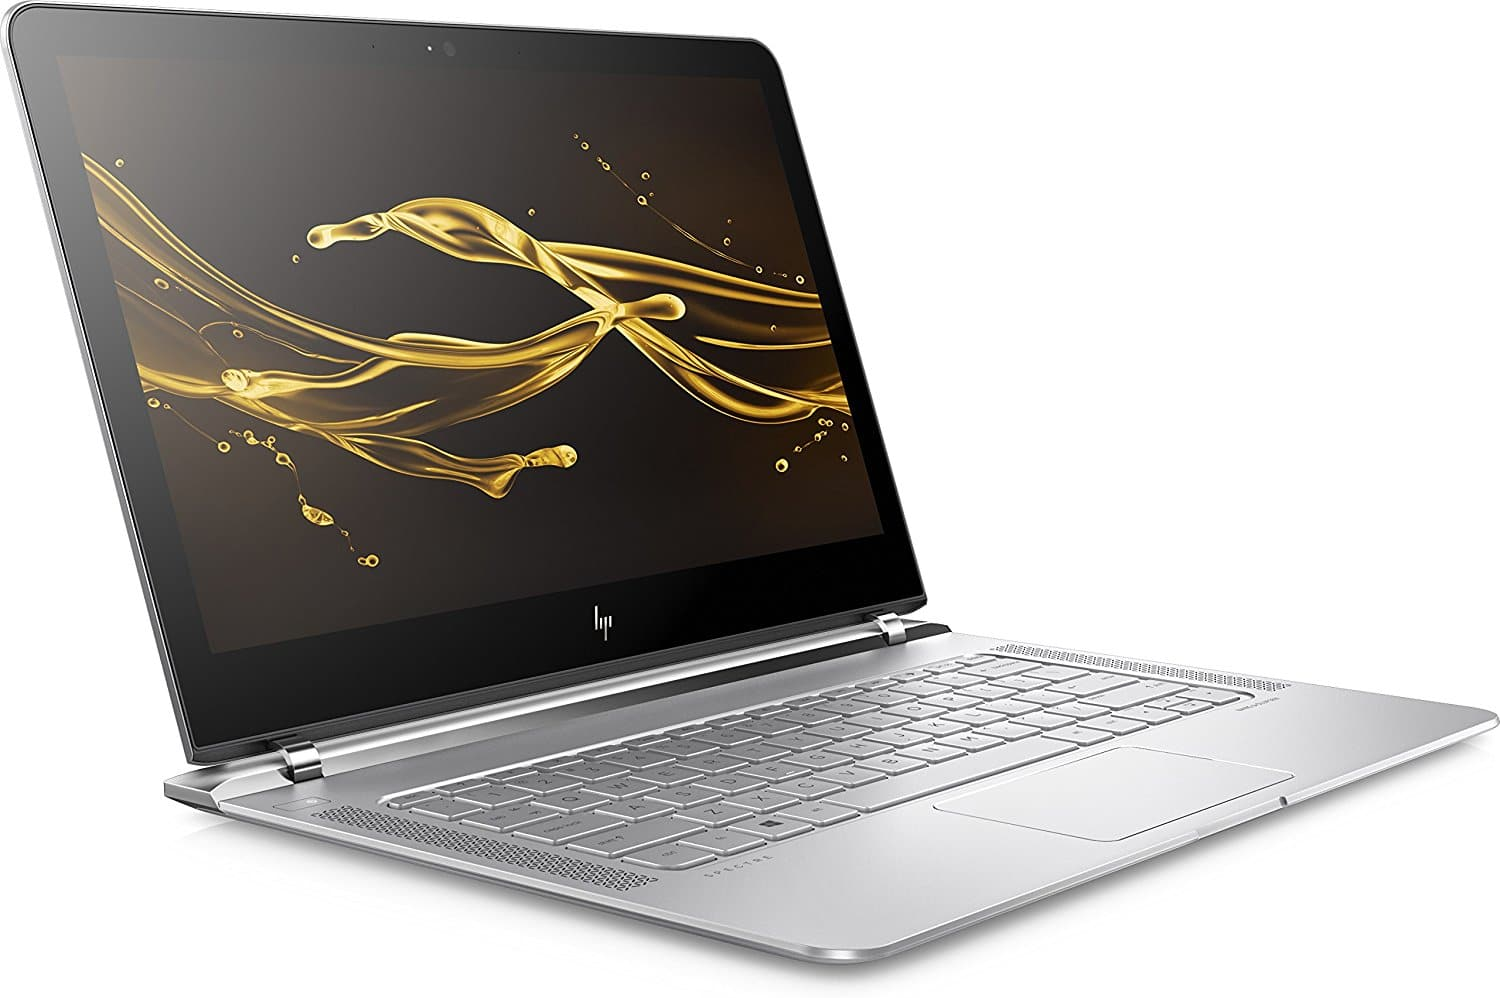 HP Spectre 13-v114nf, ultrabook 13 pouces fin et léger i5 Kaby SSD 256 promo 999€